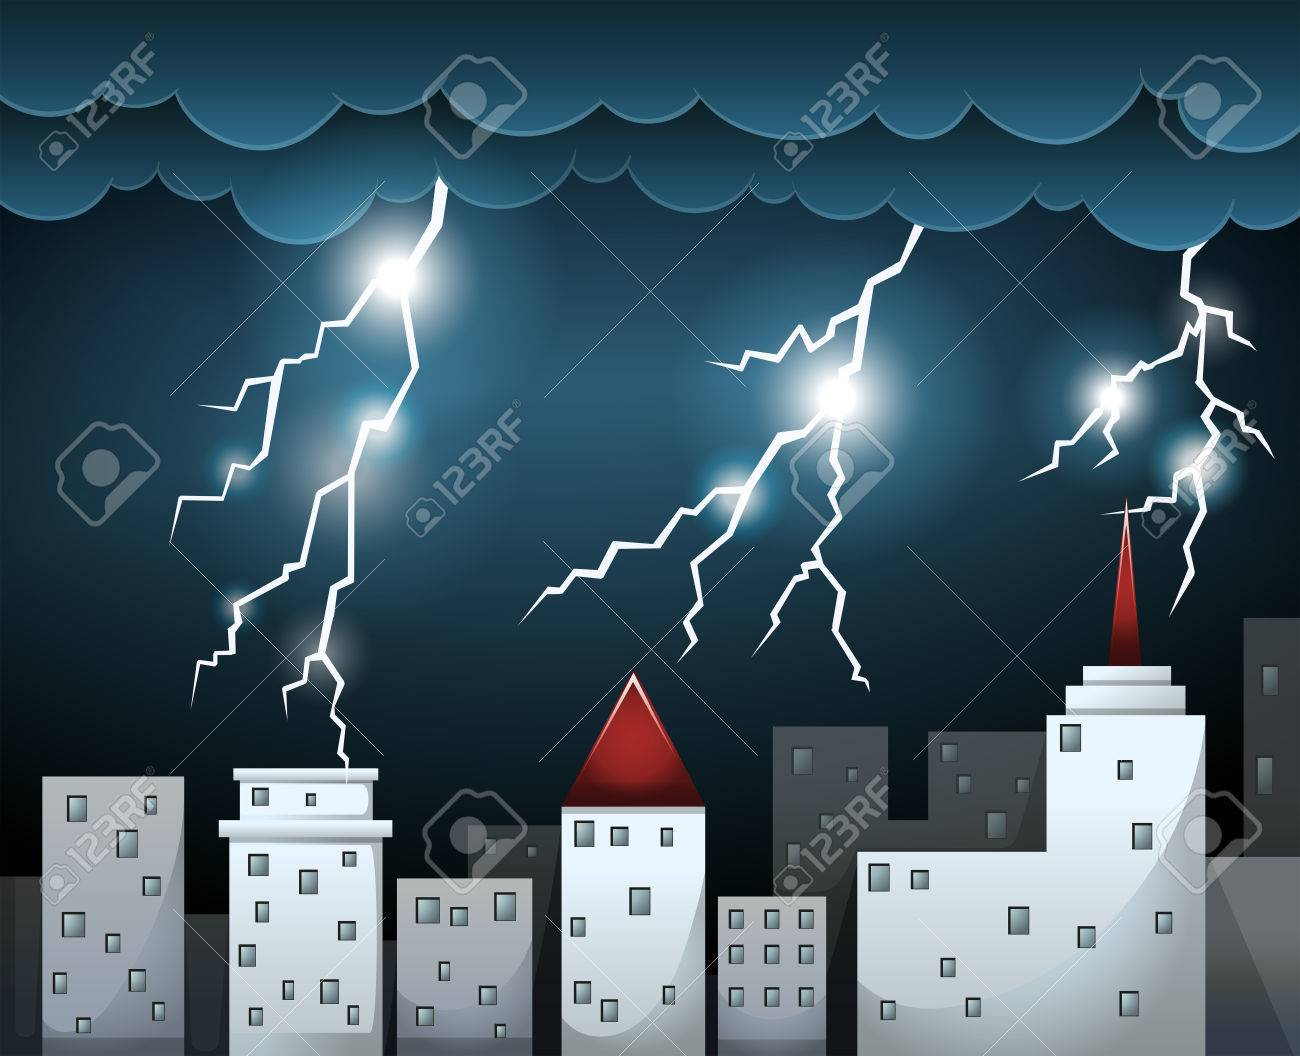 thunderstorm and dark clouds over city illustration royalty free rh 123rf com thunderstorm clipart black and white thunderstorm clipart gif